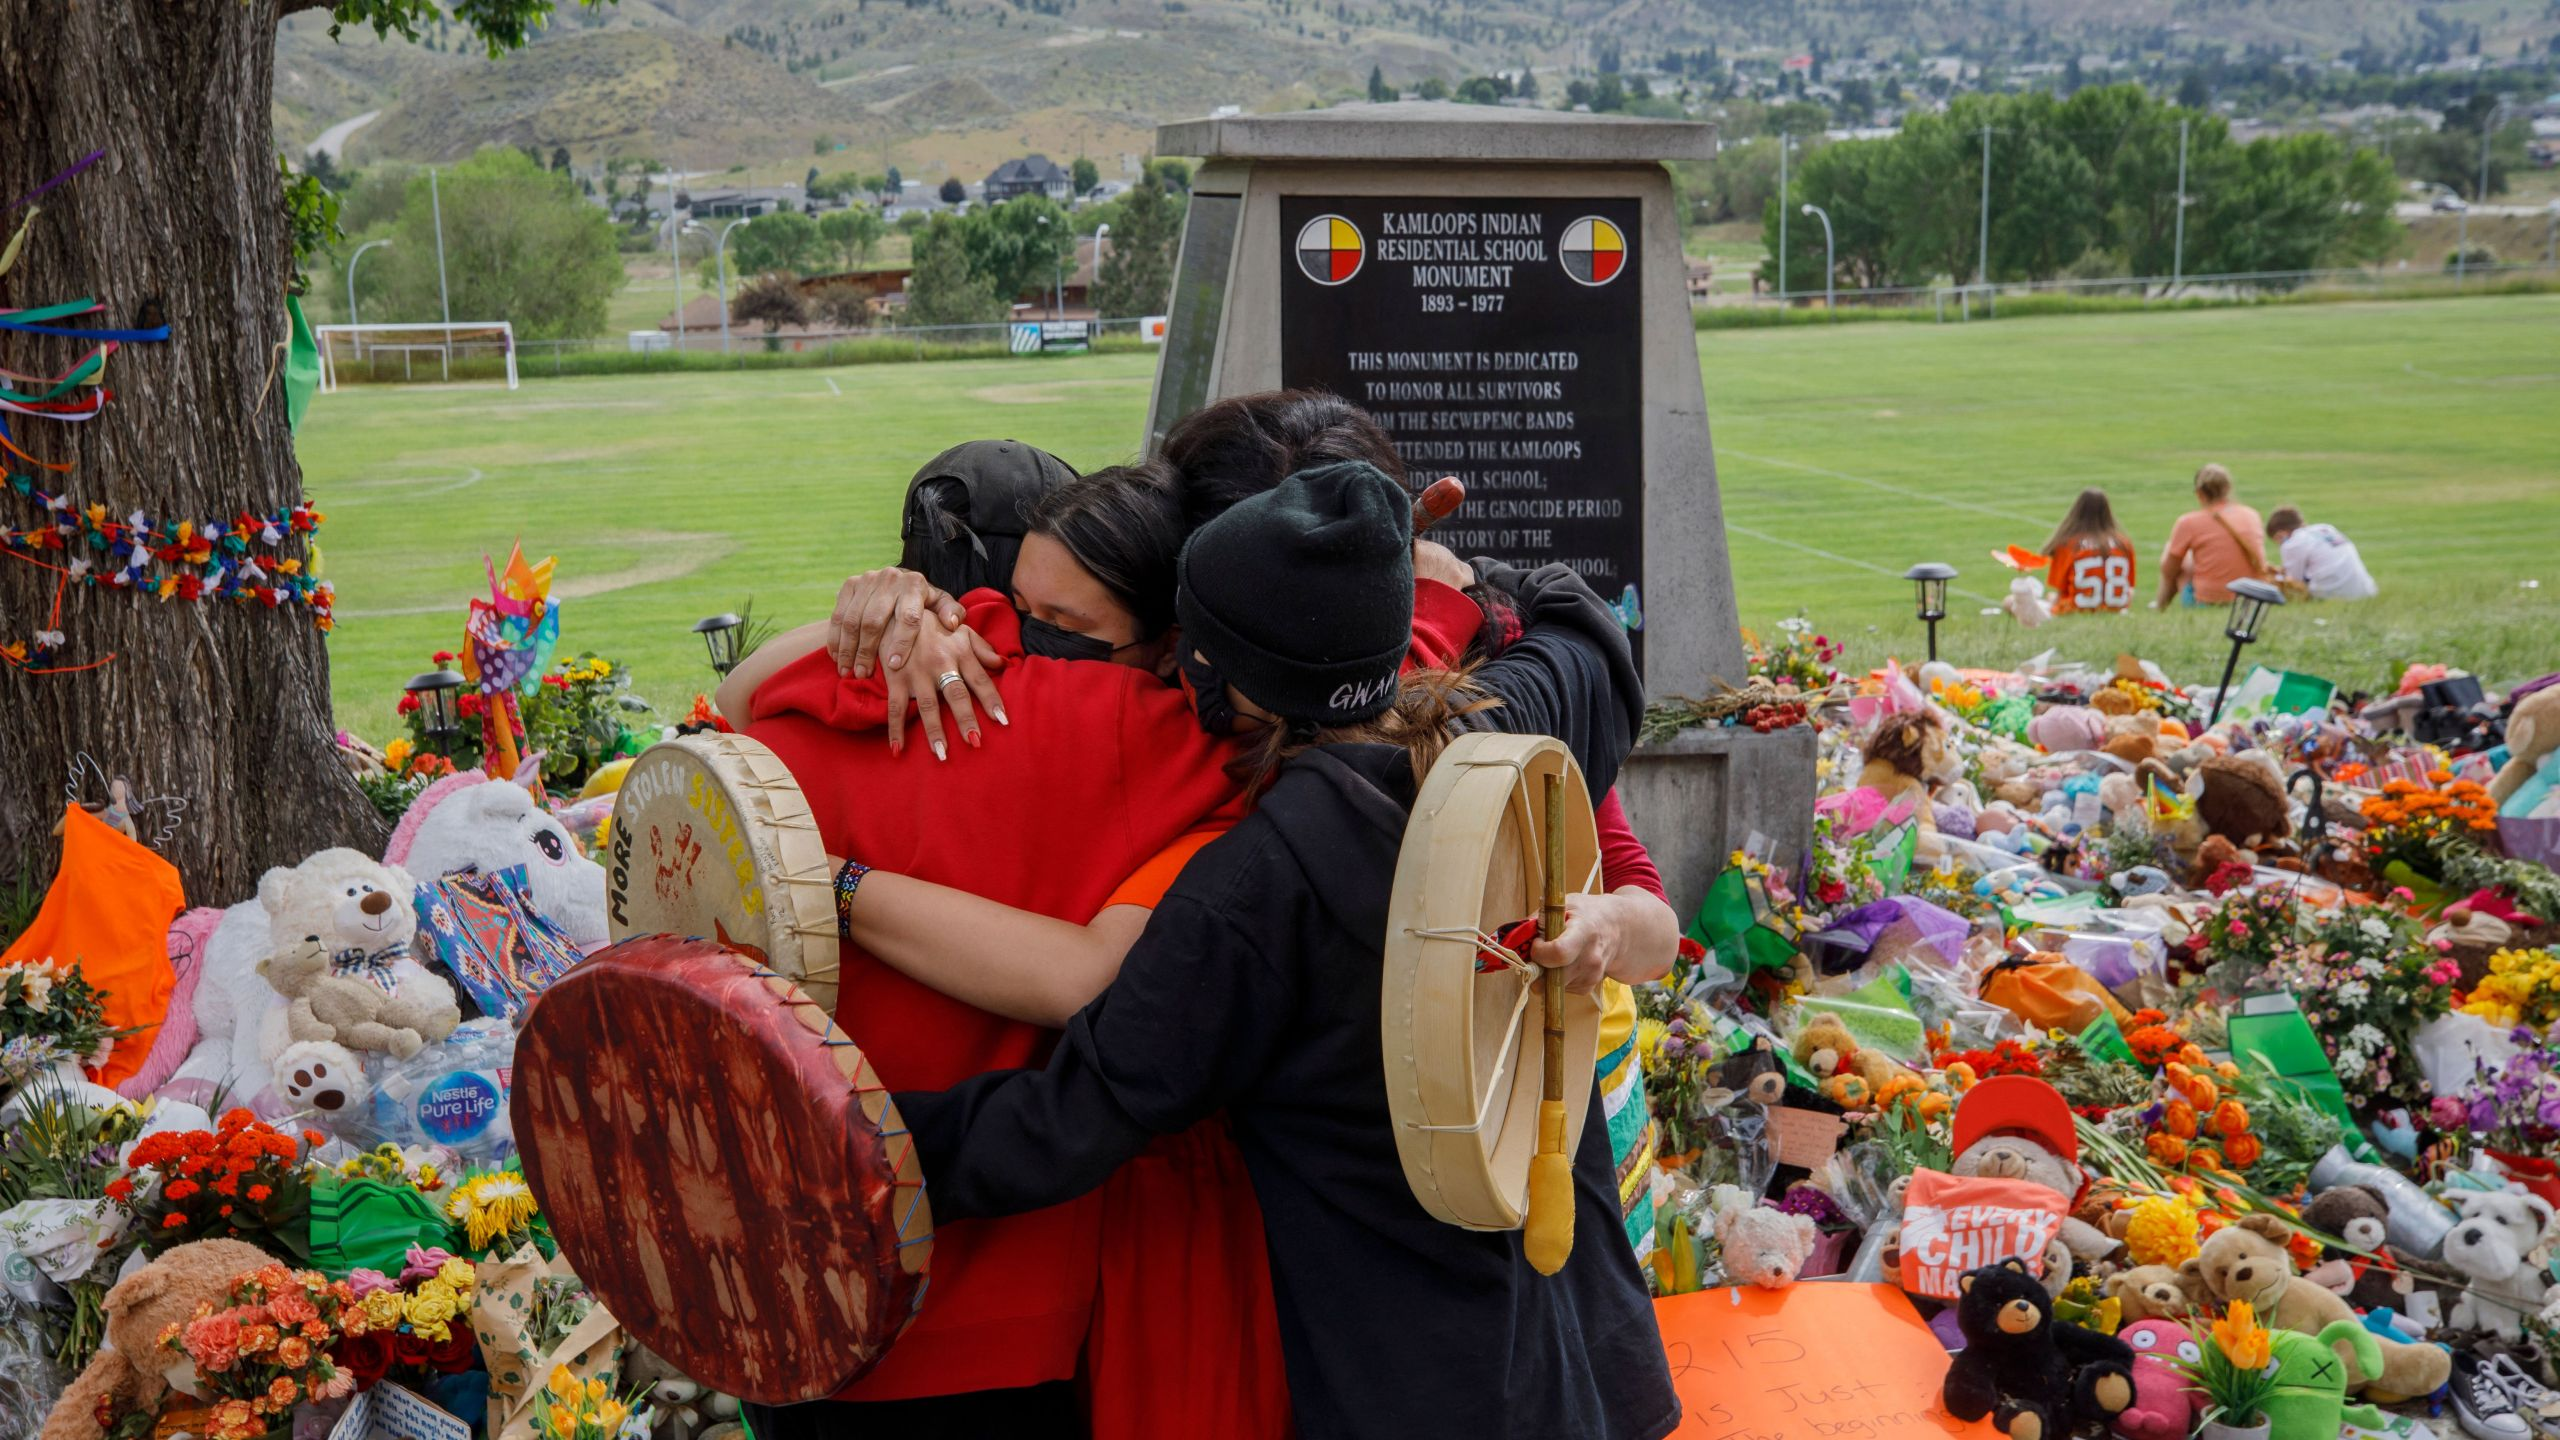 People from Mosakahiken Cree Nation hug in front of a makeshift memorial at the former Kamloops Indian Residential School to honor the 215 children whose remains were recently discovered buried near the facility, in Kamloops, British Columbia, Canada, on June 4, 2021. (COLE BURSTON/AFP via Getty Images)